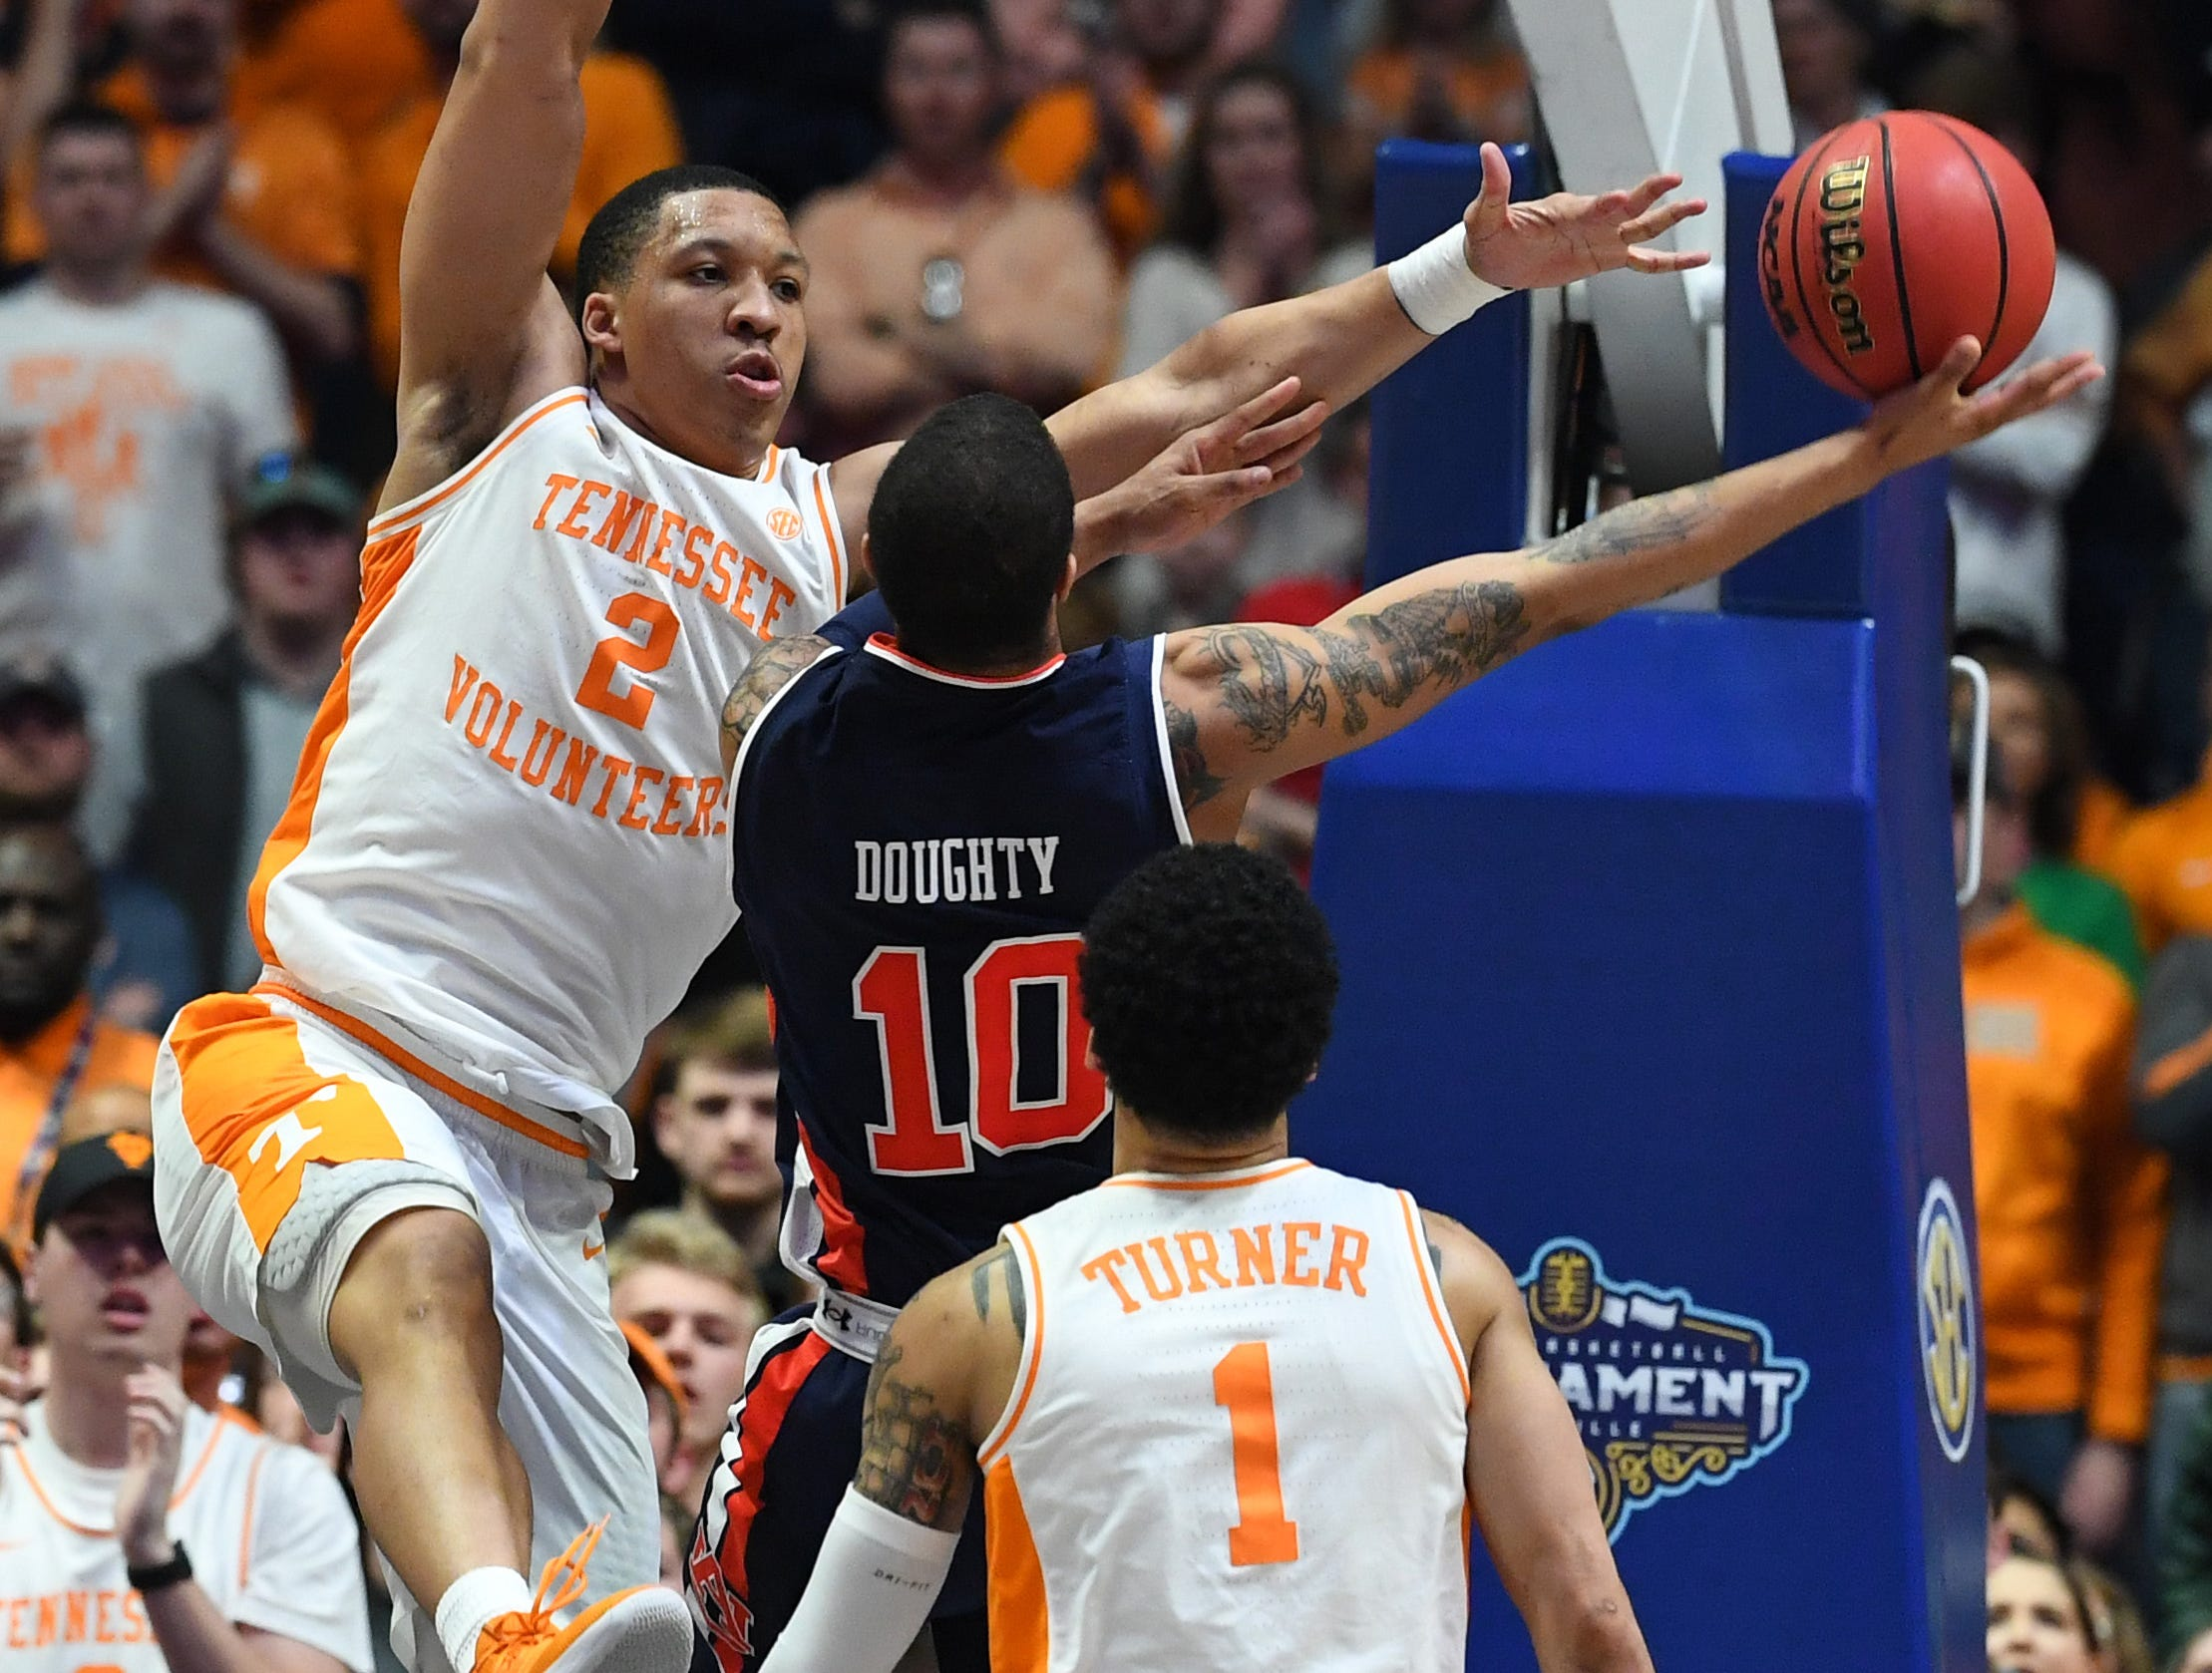 Mar 17, 2019; Nashville, TN, USA; Tennessee Volunteers forward Grant Williams (2) tries to block a shot by Auburn Tigers guard Samir Doughty (10) during the first half in the SEC conference tournament championship game at Bridgestone Arena. Mandatory Credit: Christopher Hanewinckel-USA TODAY Sports